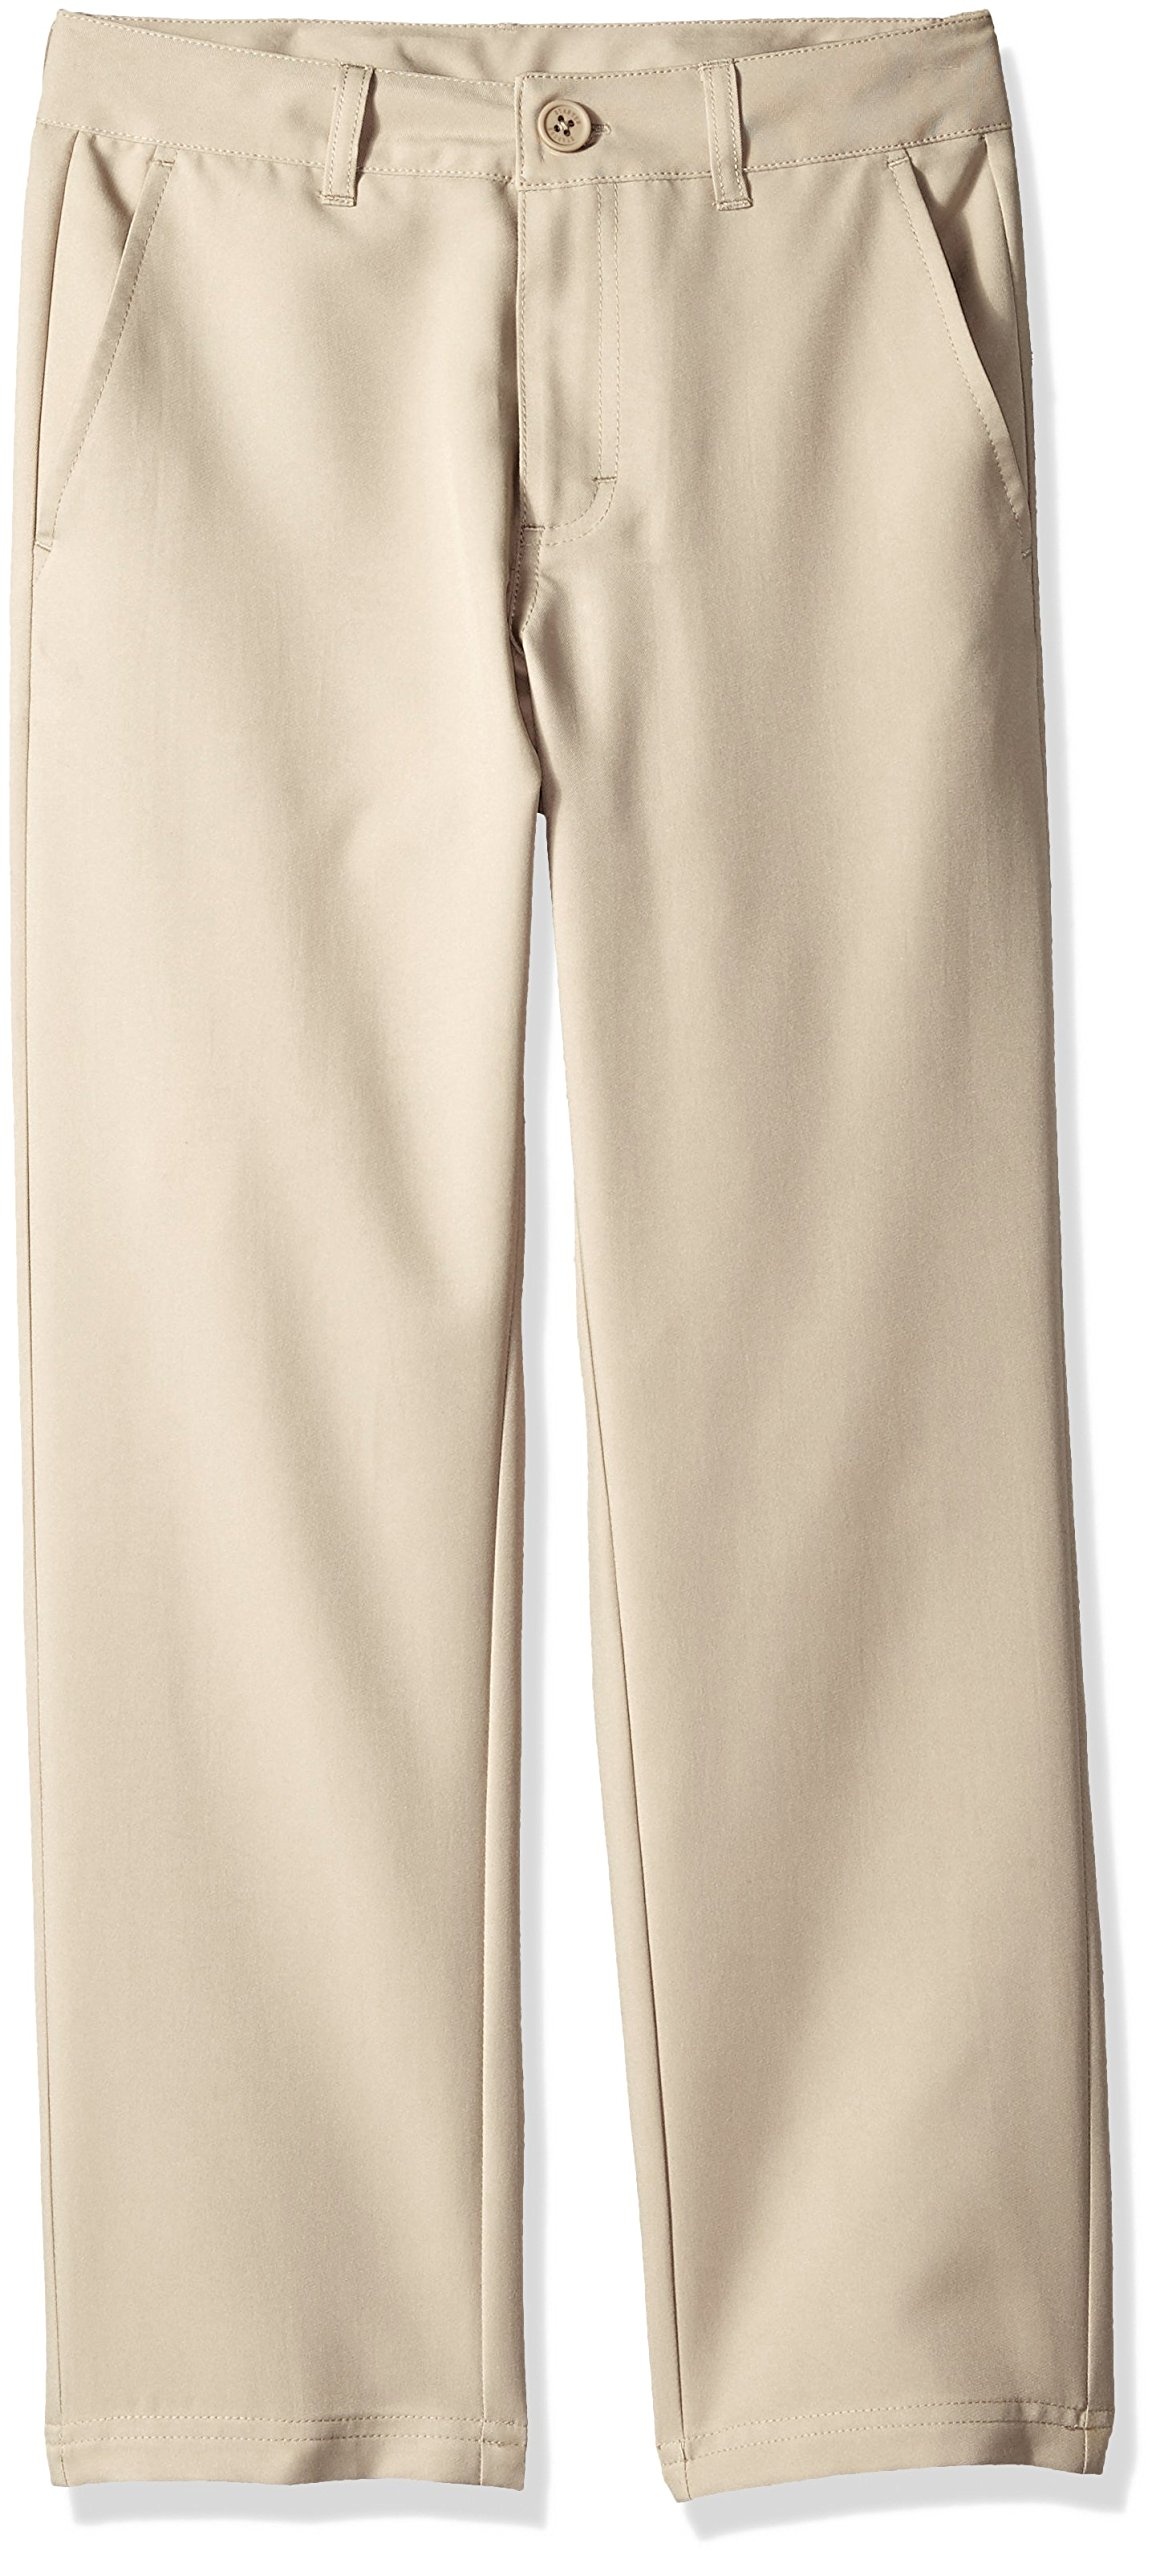 Starter Boys' Golf Club Uniform Pant, Khaki, S (6/7), Amazon Exclusive by Starter